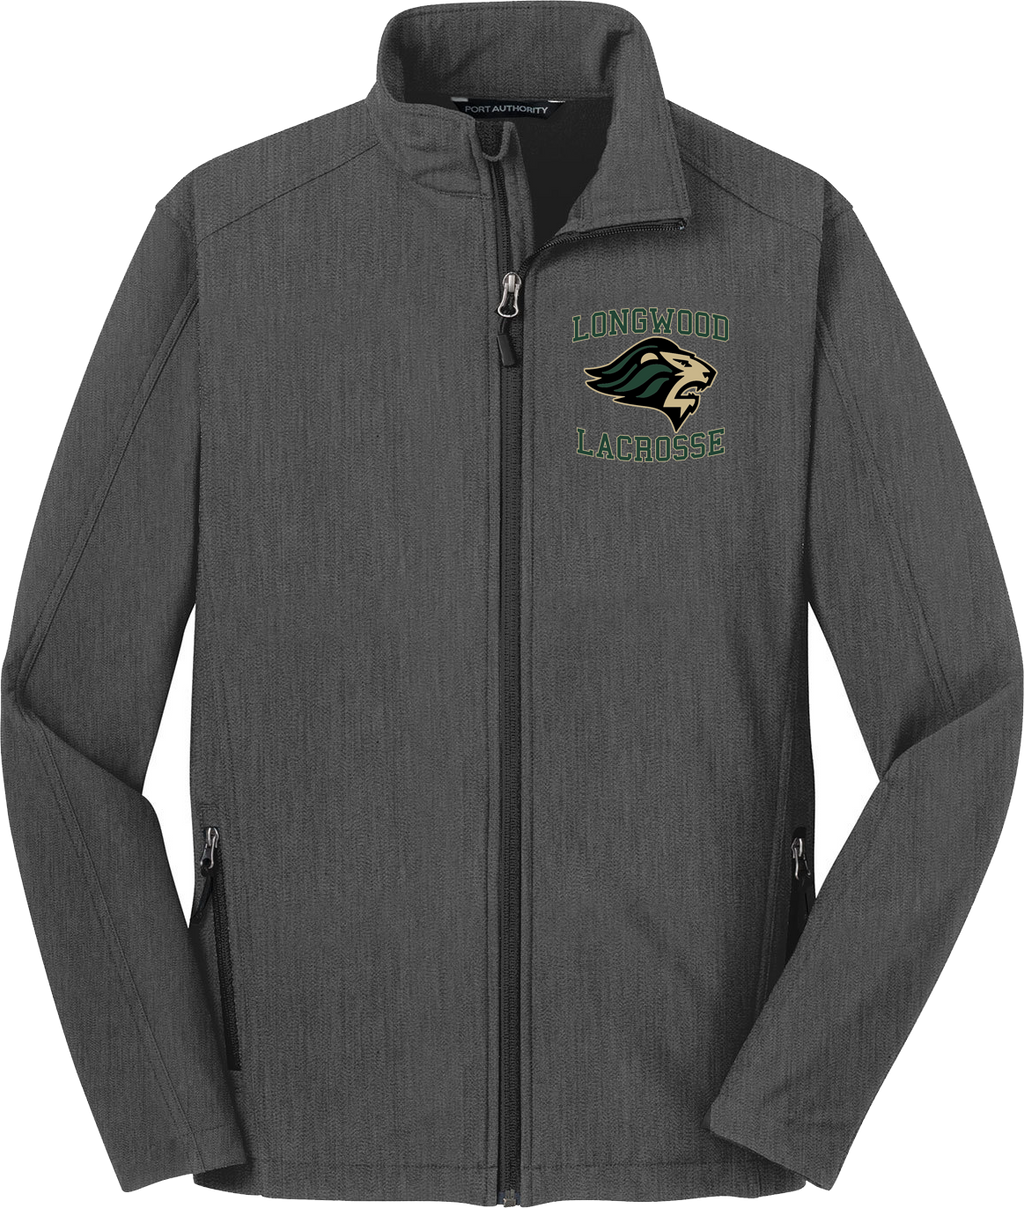 Longwood Lacrosse Charcoal Soft Shell Jacket